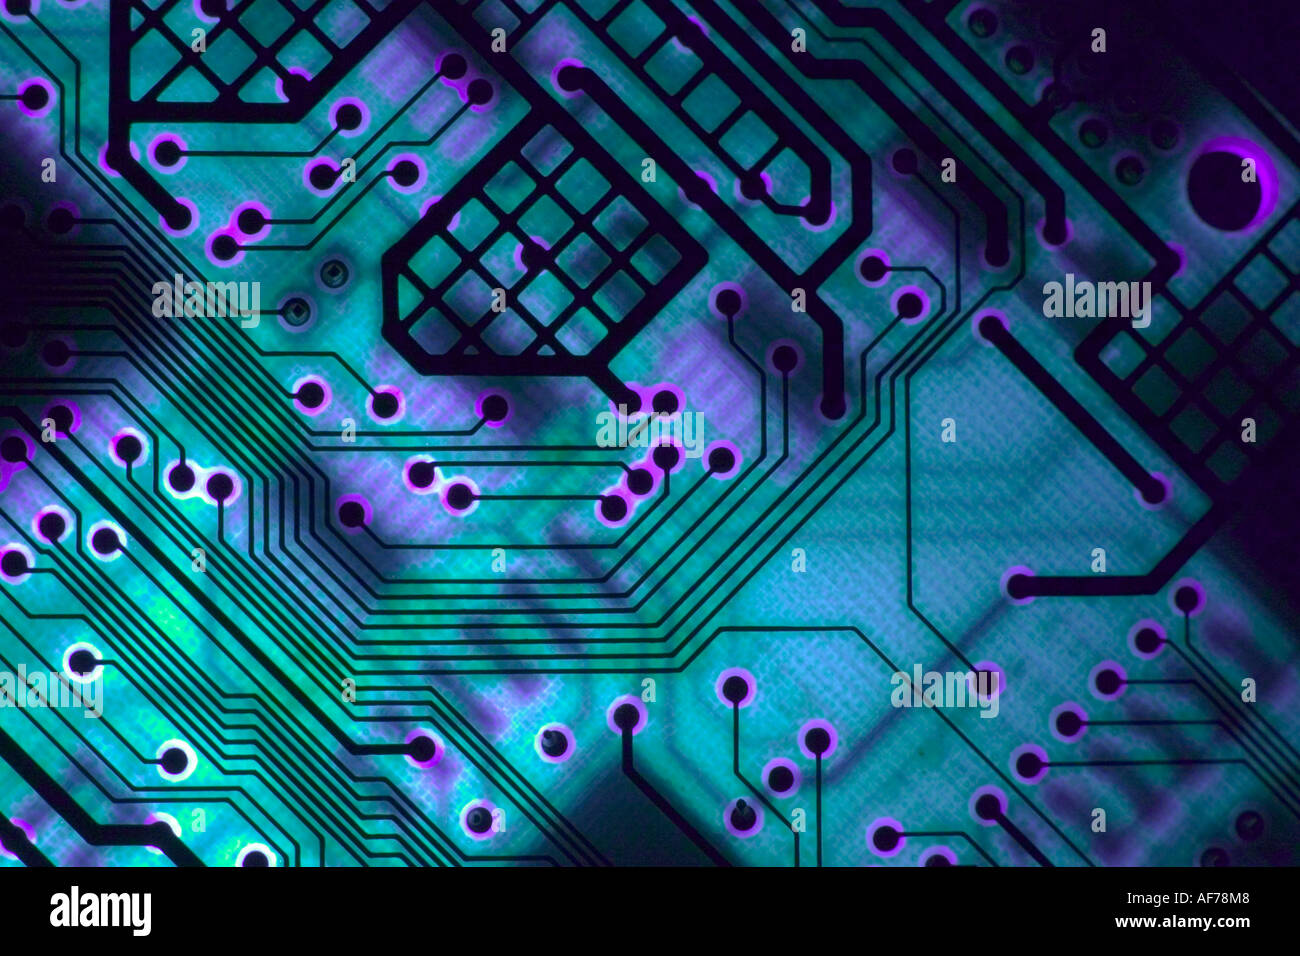 Surface Mount Technology Smt Stock Photos Circuit Board From A Nokia 3310 Mobile Phone Photo Picture And Surreal Of Electronic Printed Image